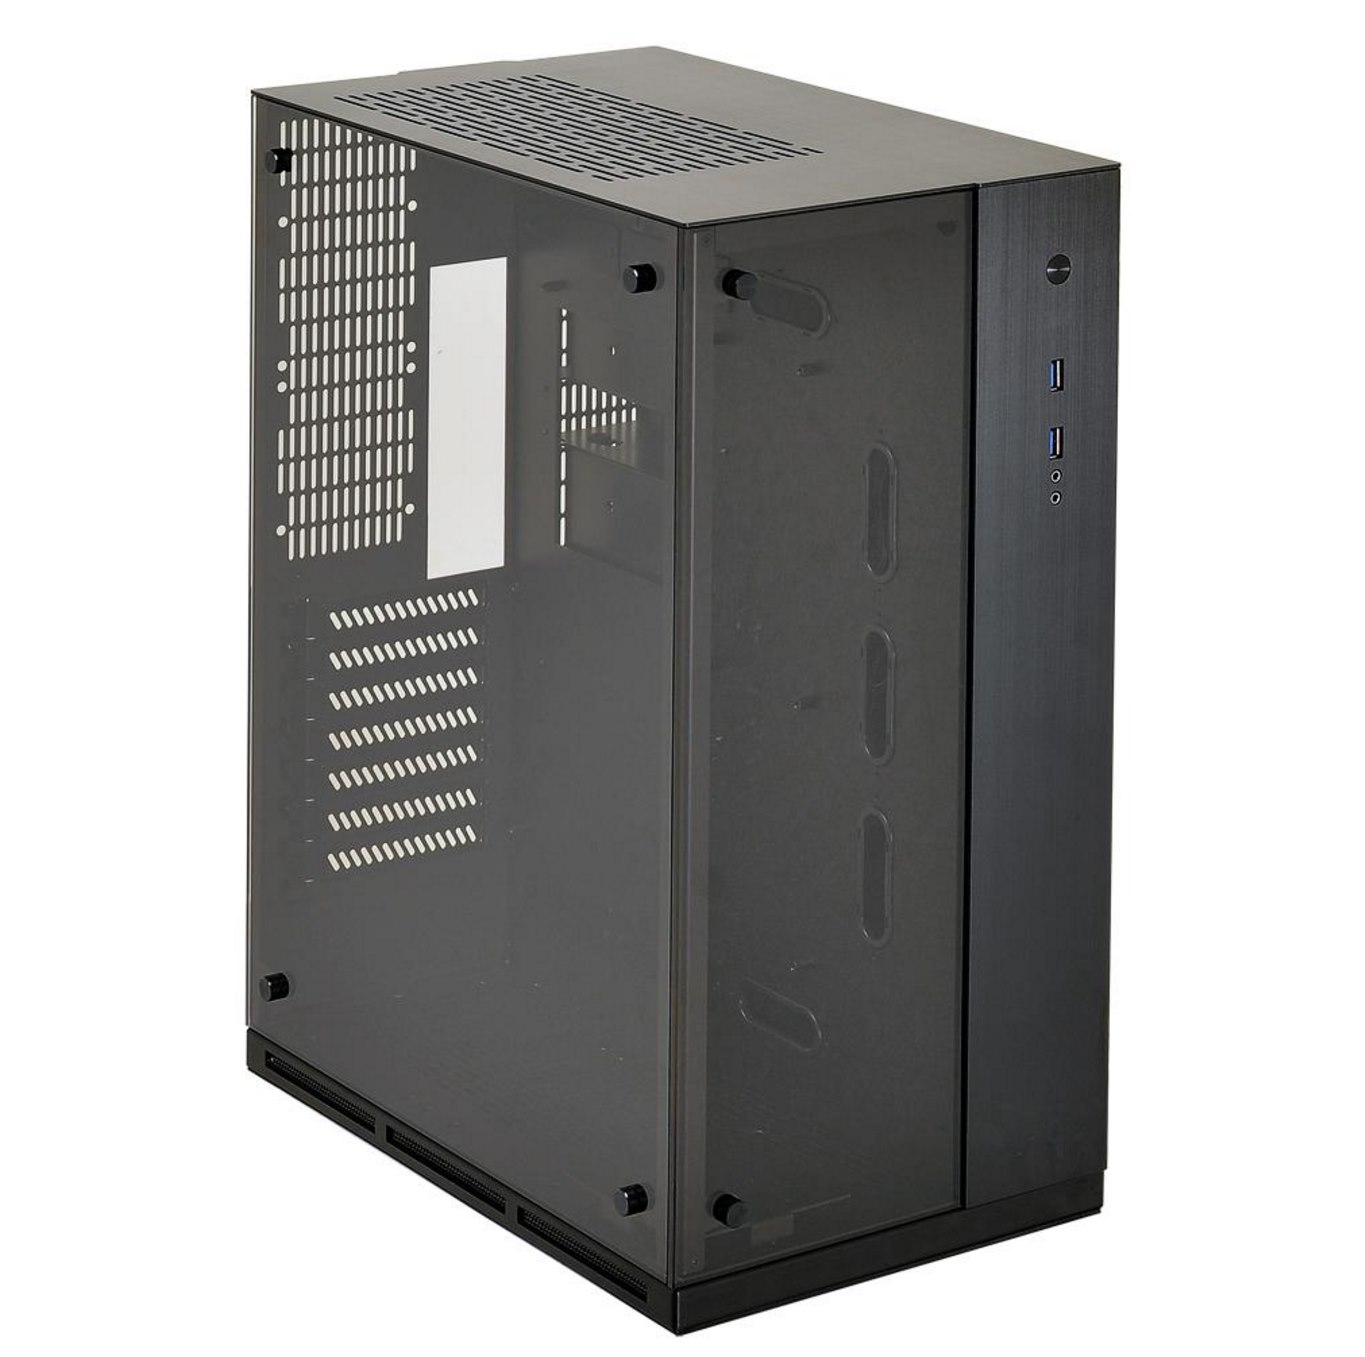 Lian Li PC-O10 Mid-Tower case